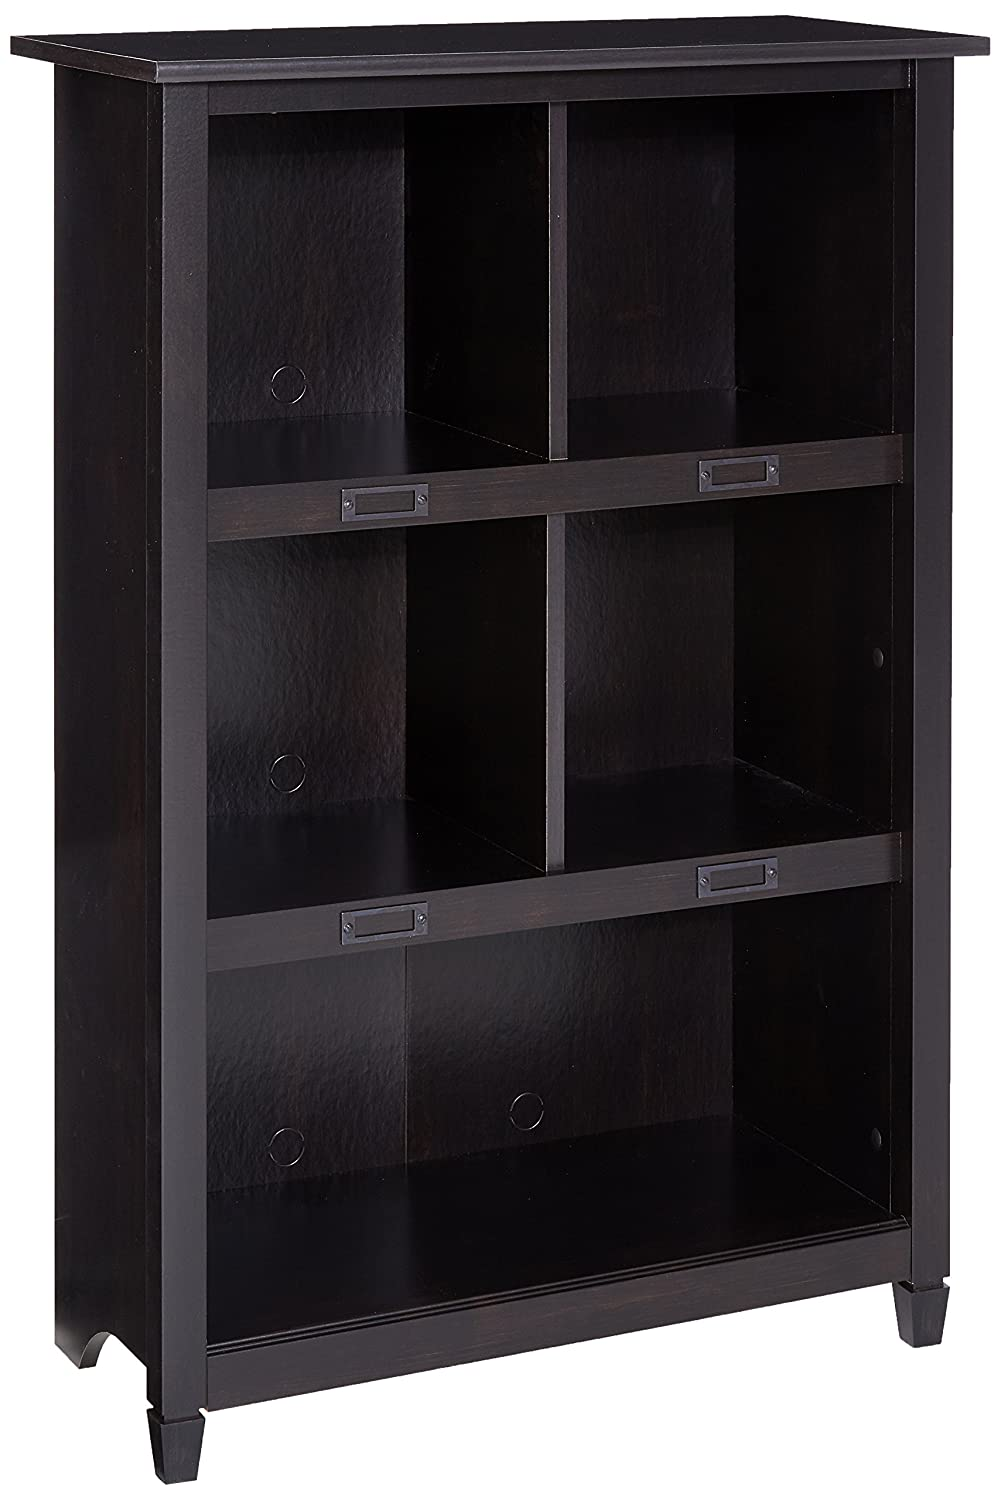 Sauder Edge Water Bookcase, Estate Black 414814